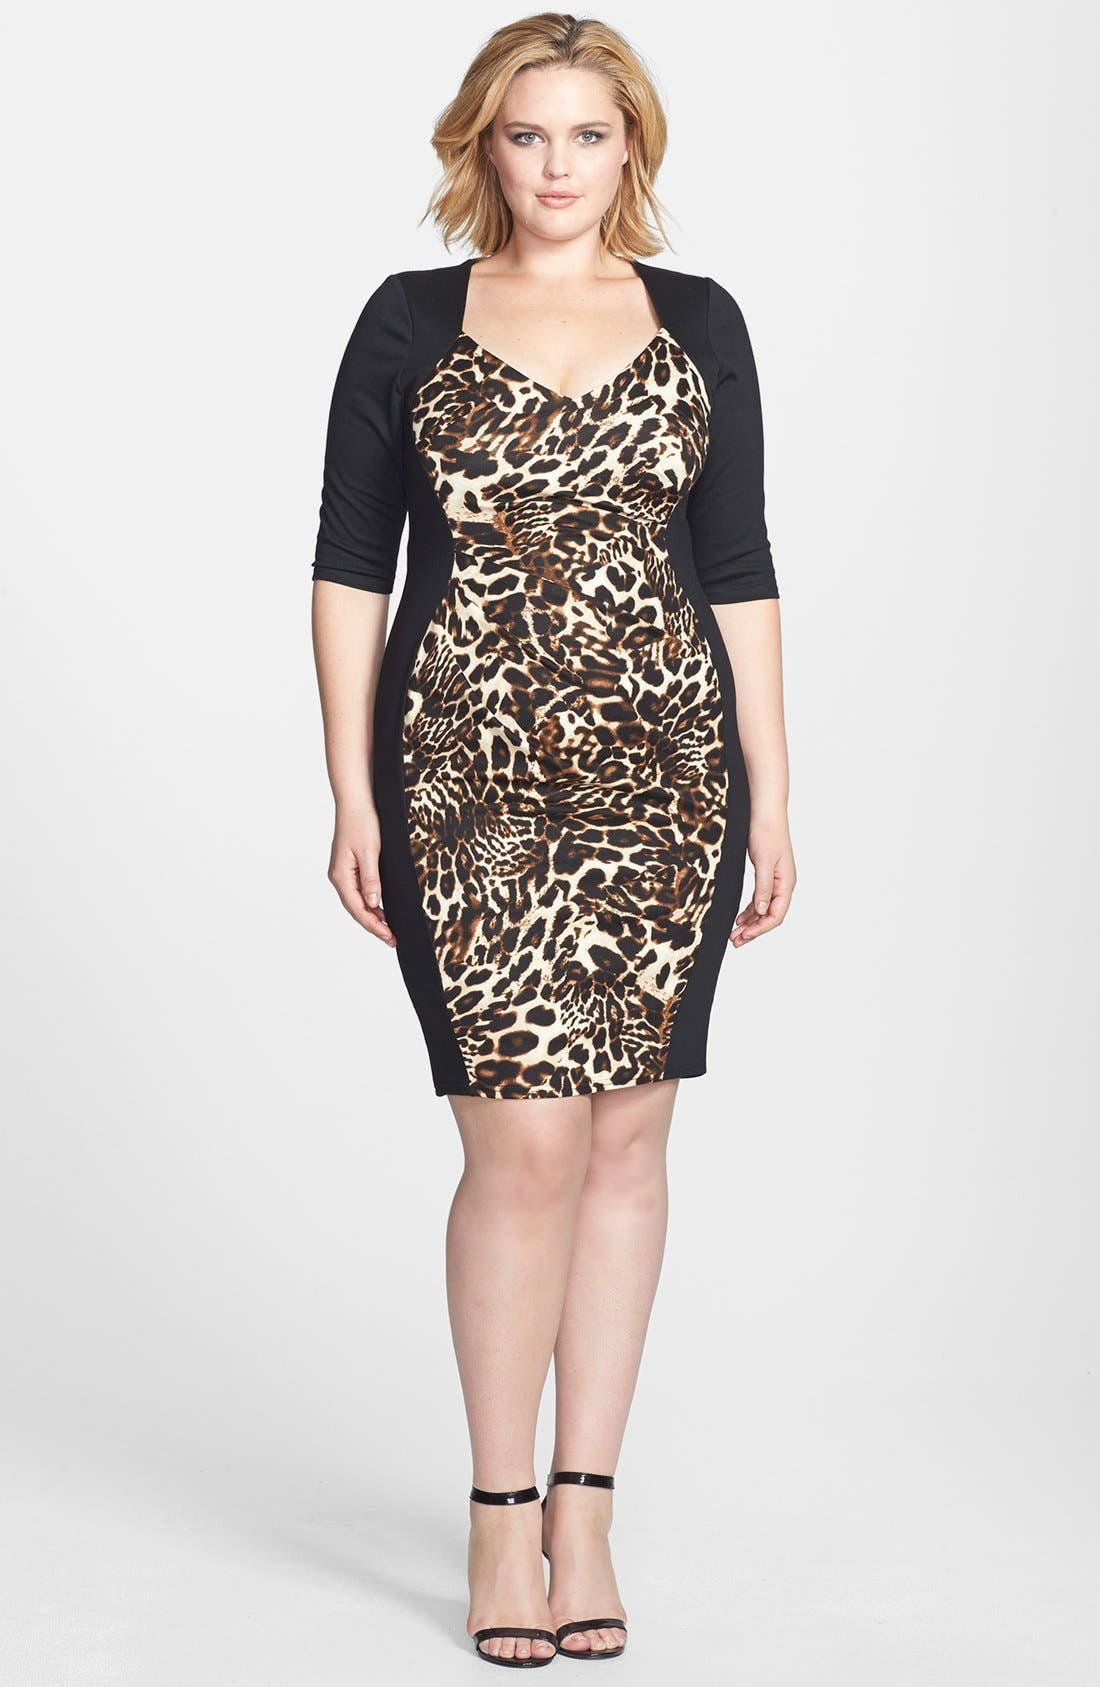 Alternate Image 1 Selected - Scarlett & Jo Animal Print Colorblock Sheath Dress (Plus Size)